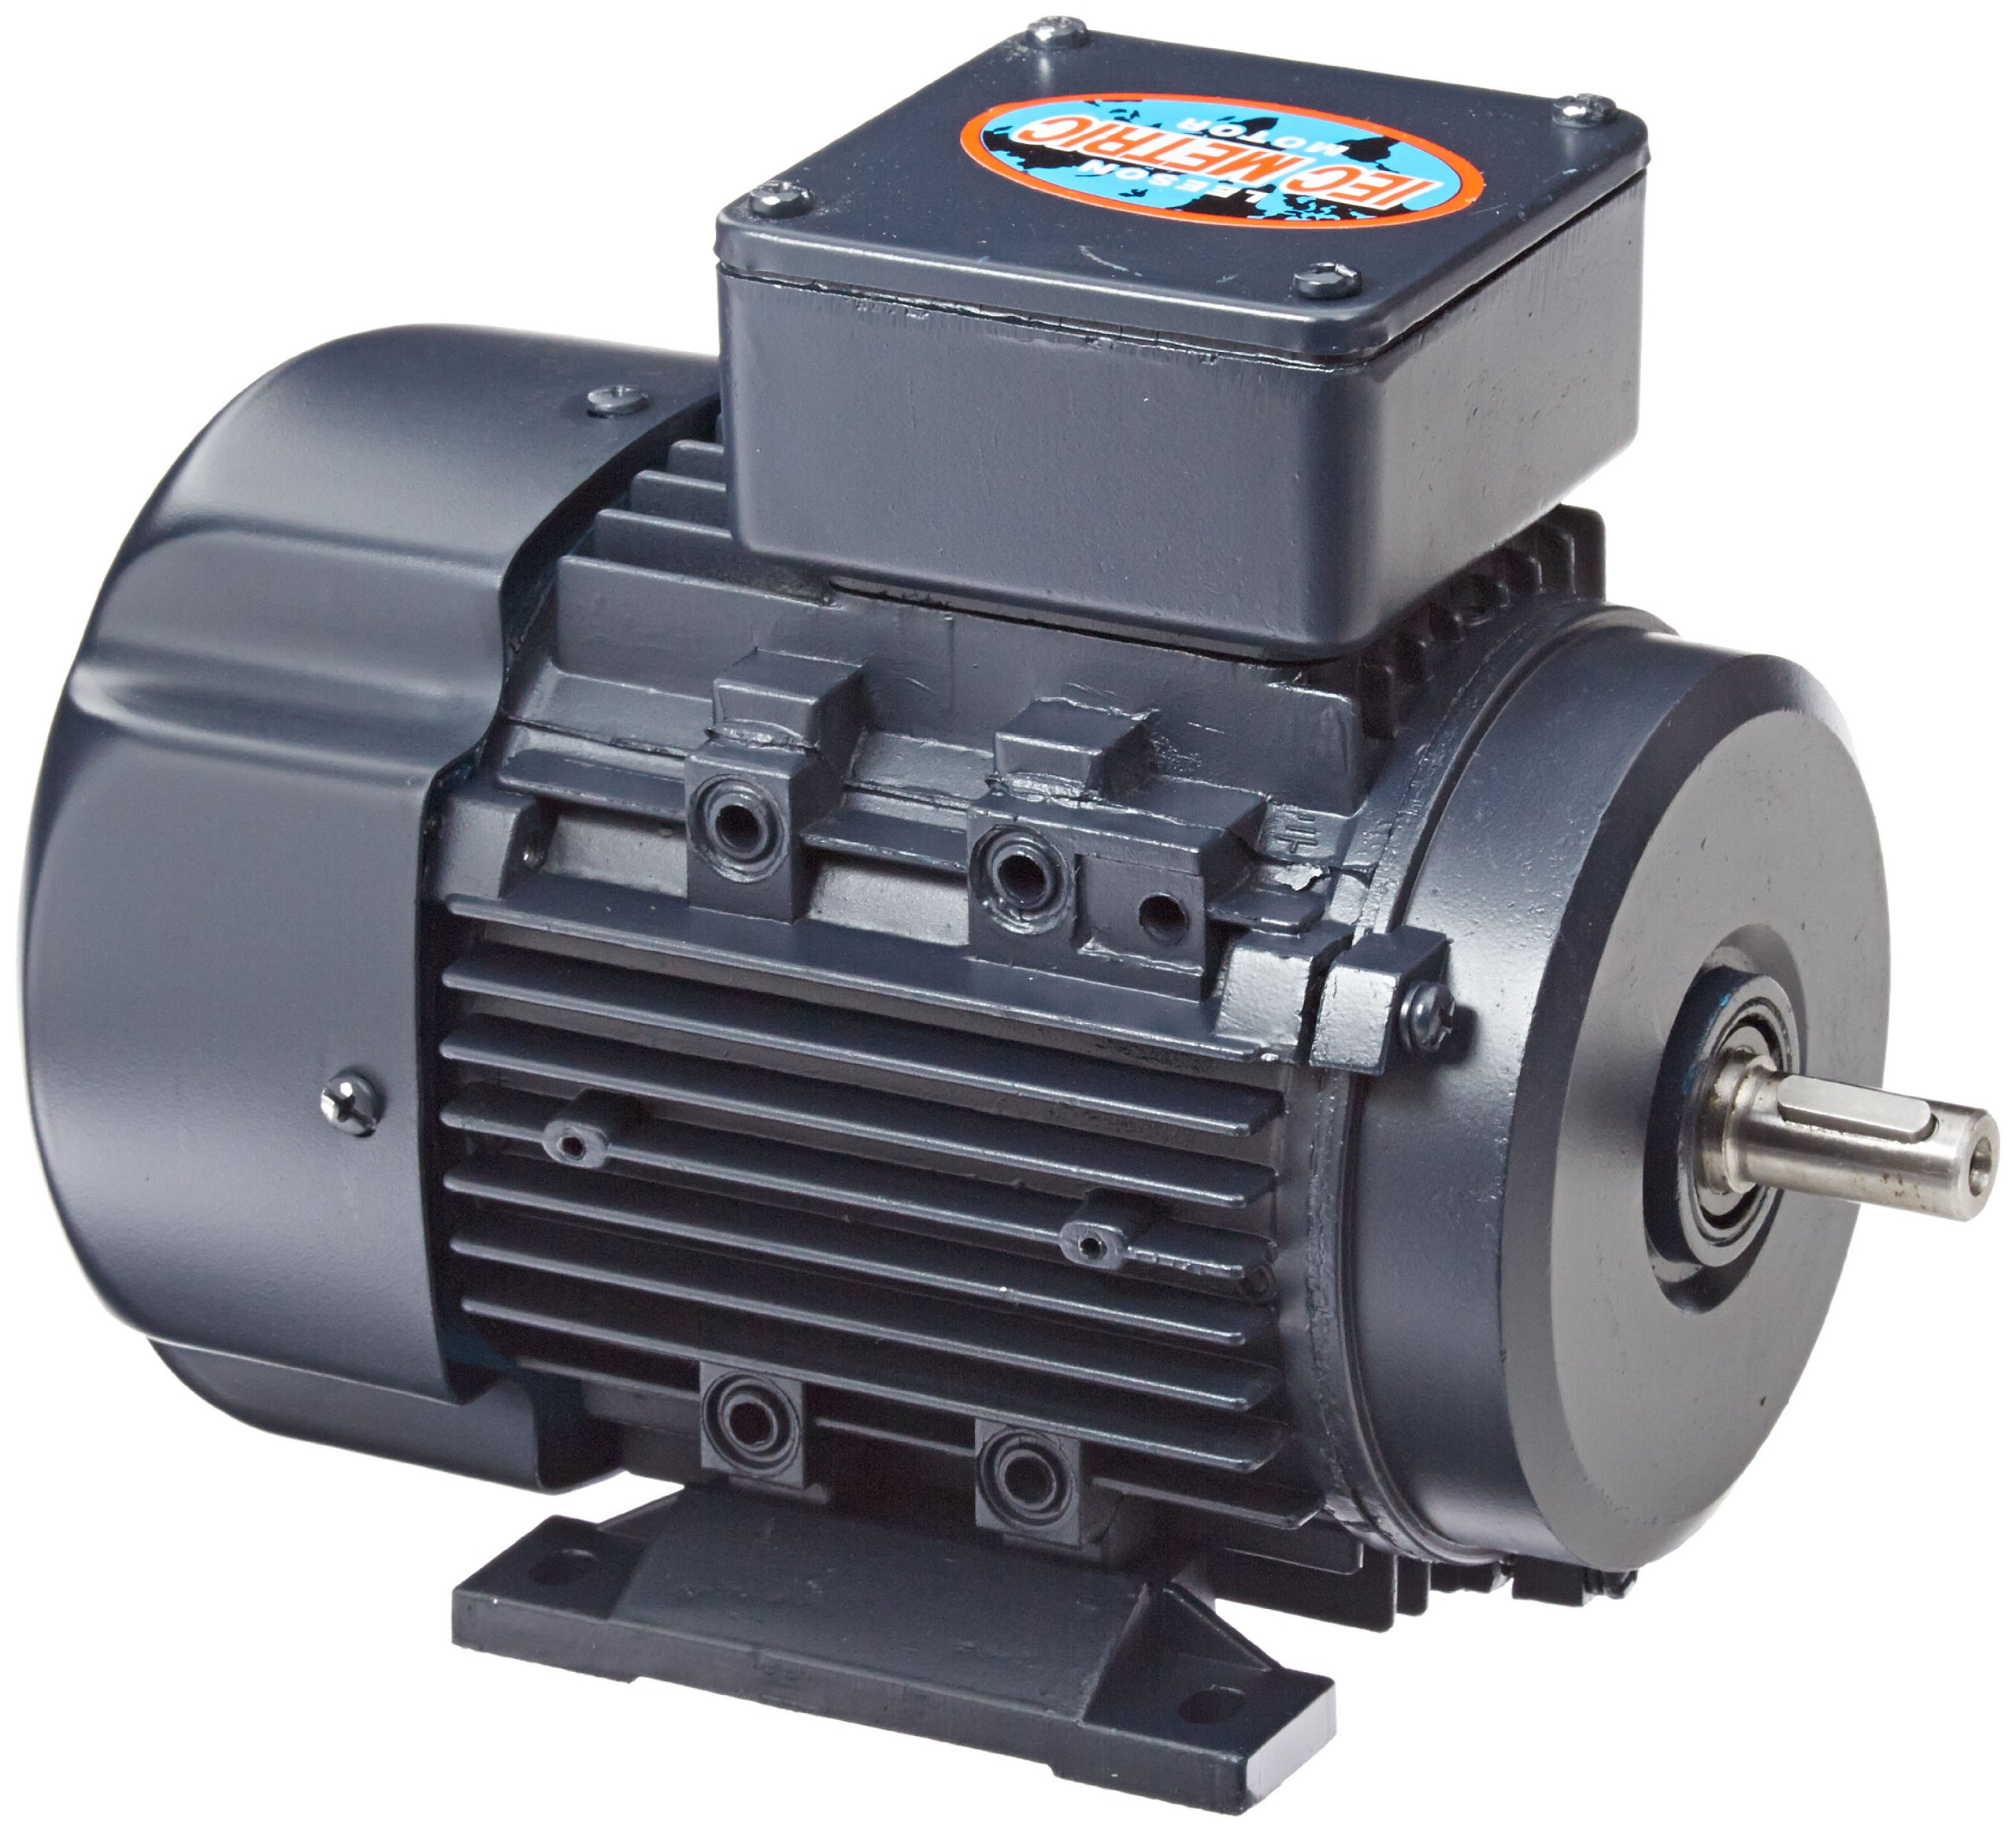 Leeson 192107.00 Rigid Base IEC Metric Motor, 3 Phase, D71 Frame, B3 Mounting, 0.5HP, 1800 RPM, 575V Voltage, 60Hz Fequency by Leeson (Image #1)